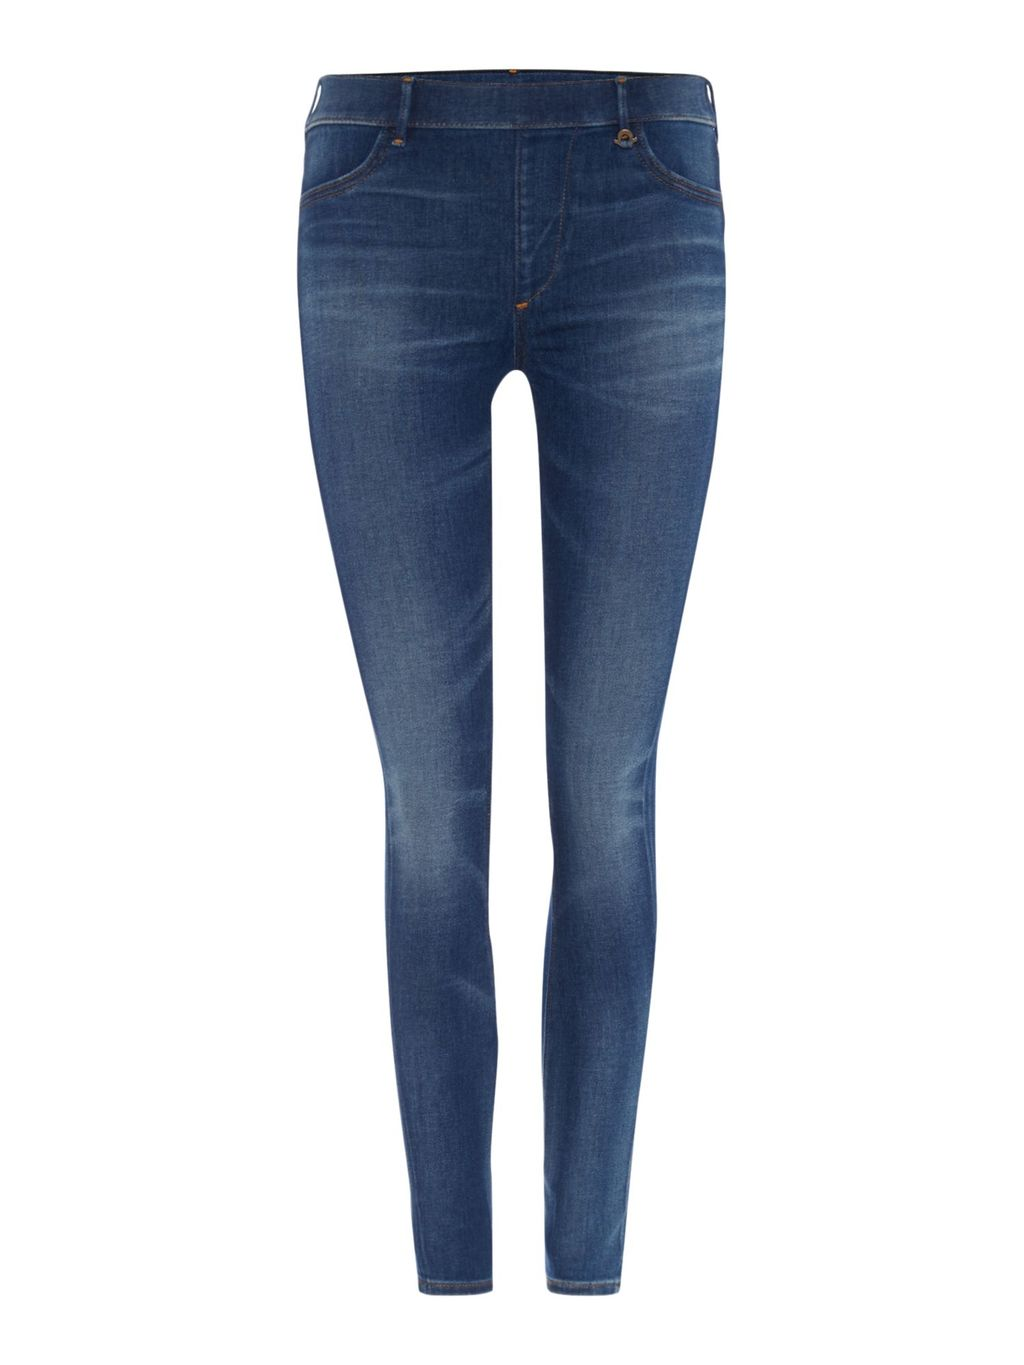 The Runway Legging Jean In Capri Blue, Denim Mid Wash - length: standard; pattern: plain; style: jeggings; waist: mid/regular rise; predominant colour: denim; occasions: casual, creative work; fibres: cotton - stretch; texture group: denim; pattern type: fabric; season: a/w 2015; wardrobe: basic